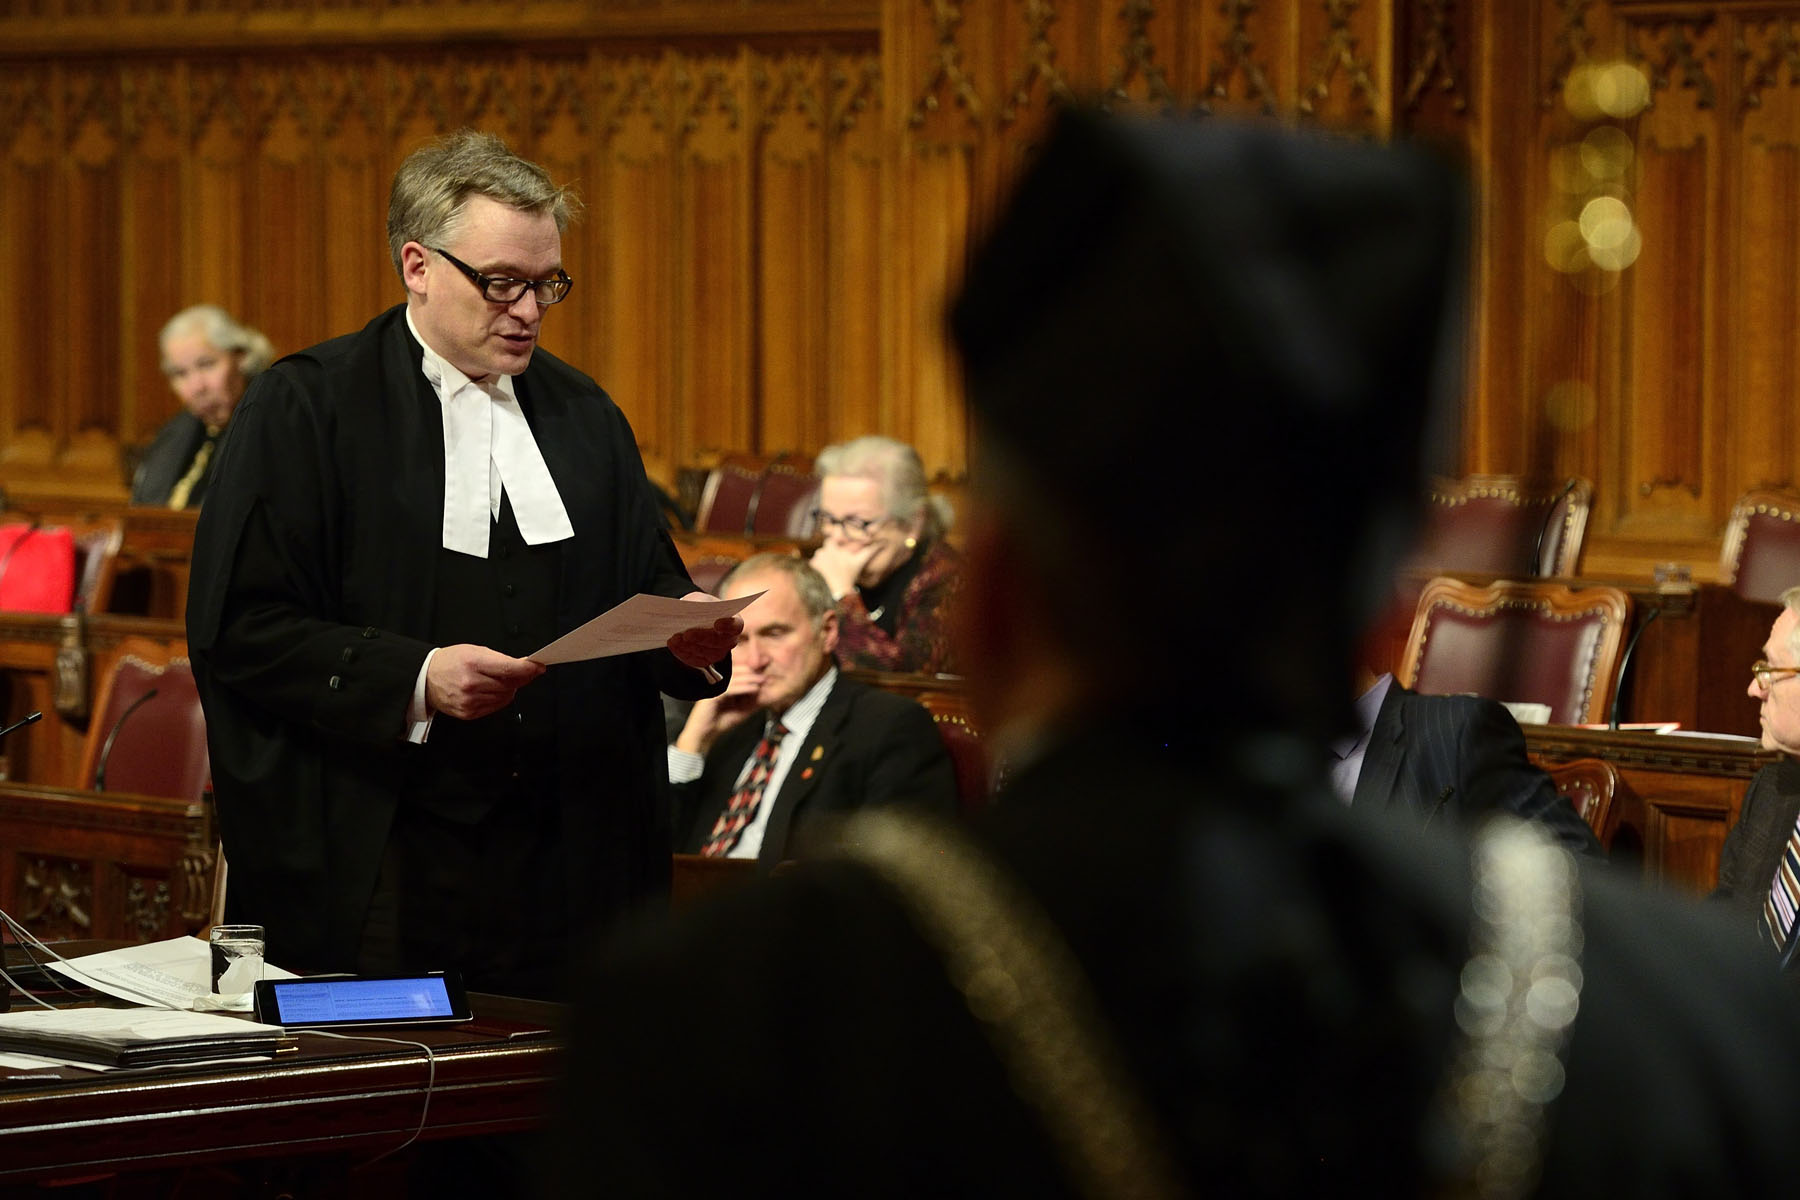 By tradition, Royal Assent is accorded in the Senate Chamber in the presence of members of the House and Senate. Since the Royal Assent Act of 2002, it may be signified by a written declaration by the governor general or by a deputy of the governor general (one of the justices of the Supreme Court).